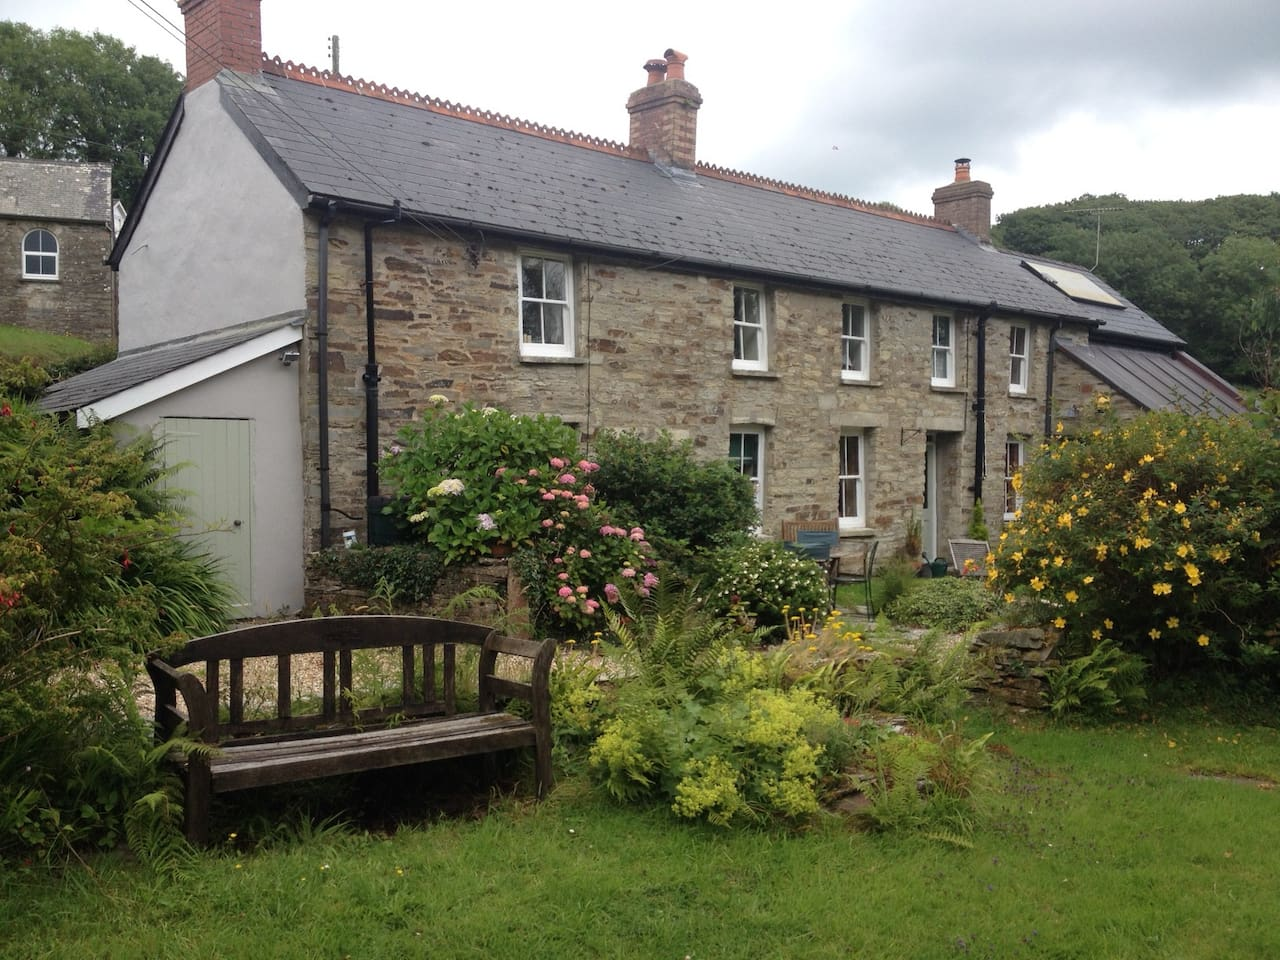 Two quarry worker's cottages in the foothills of the Preseli hills